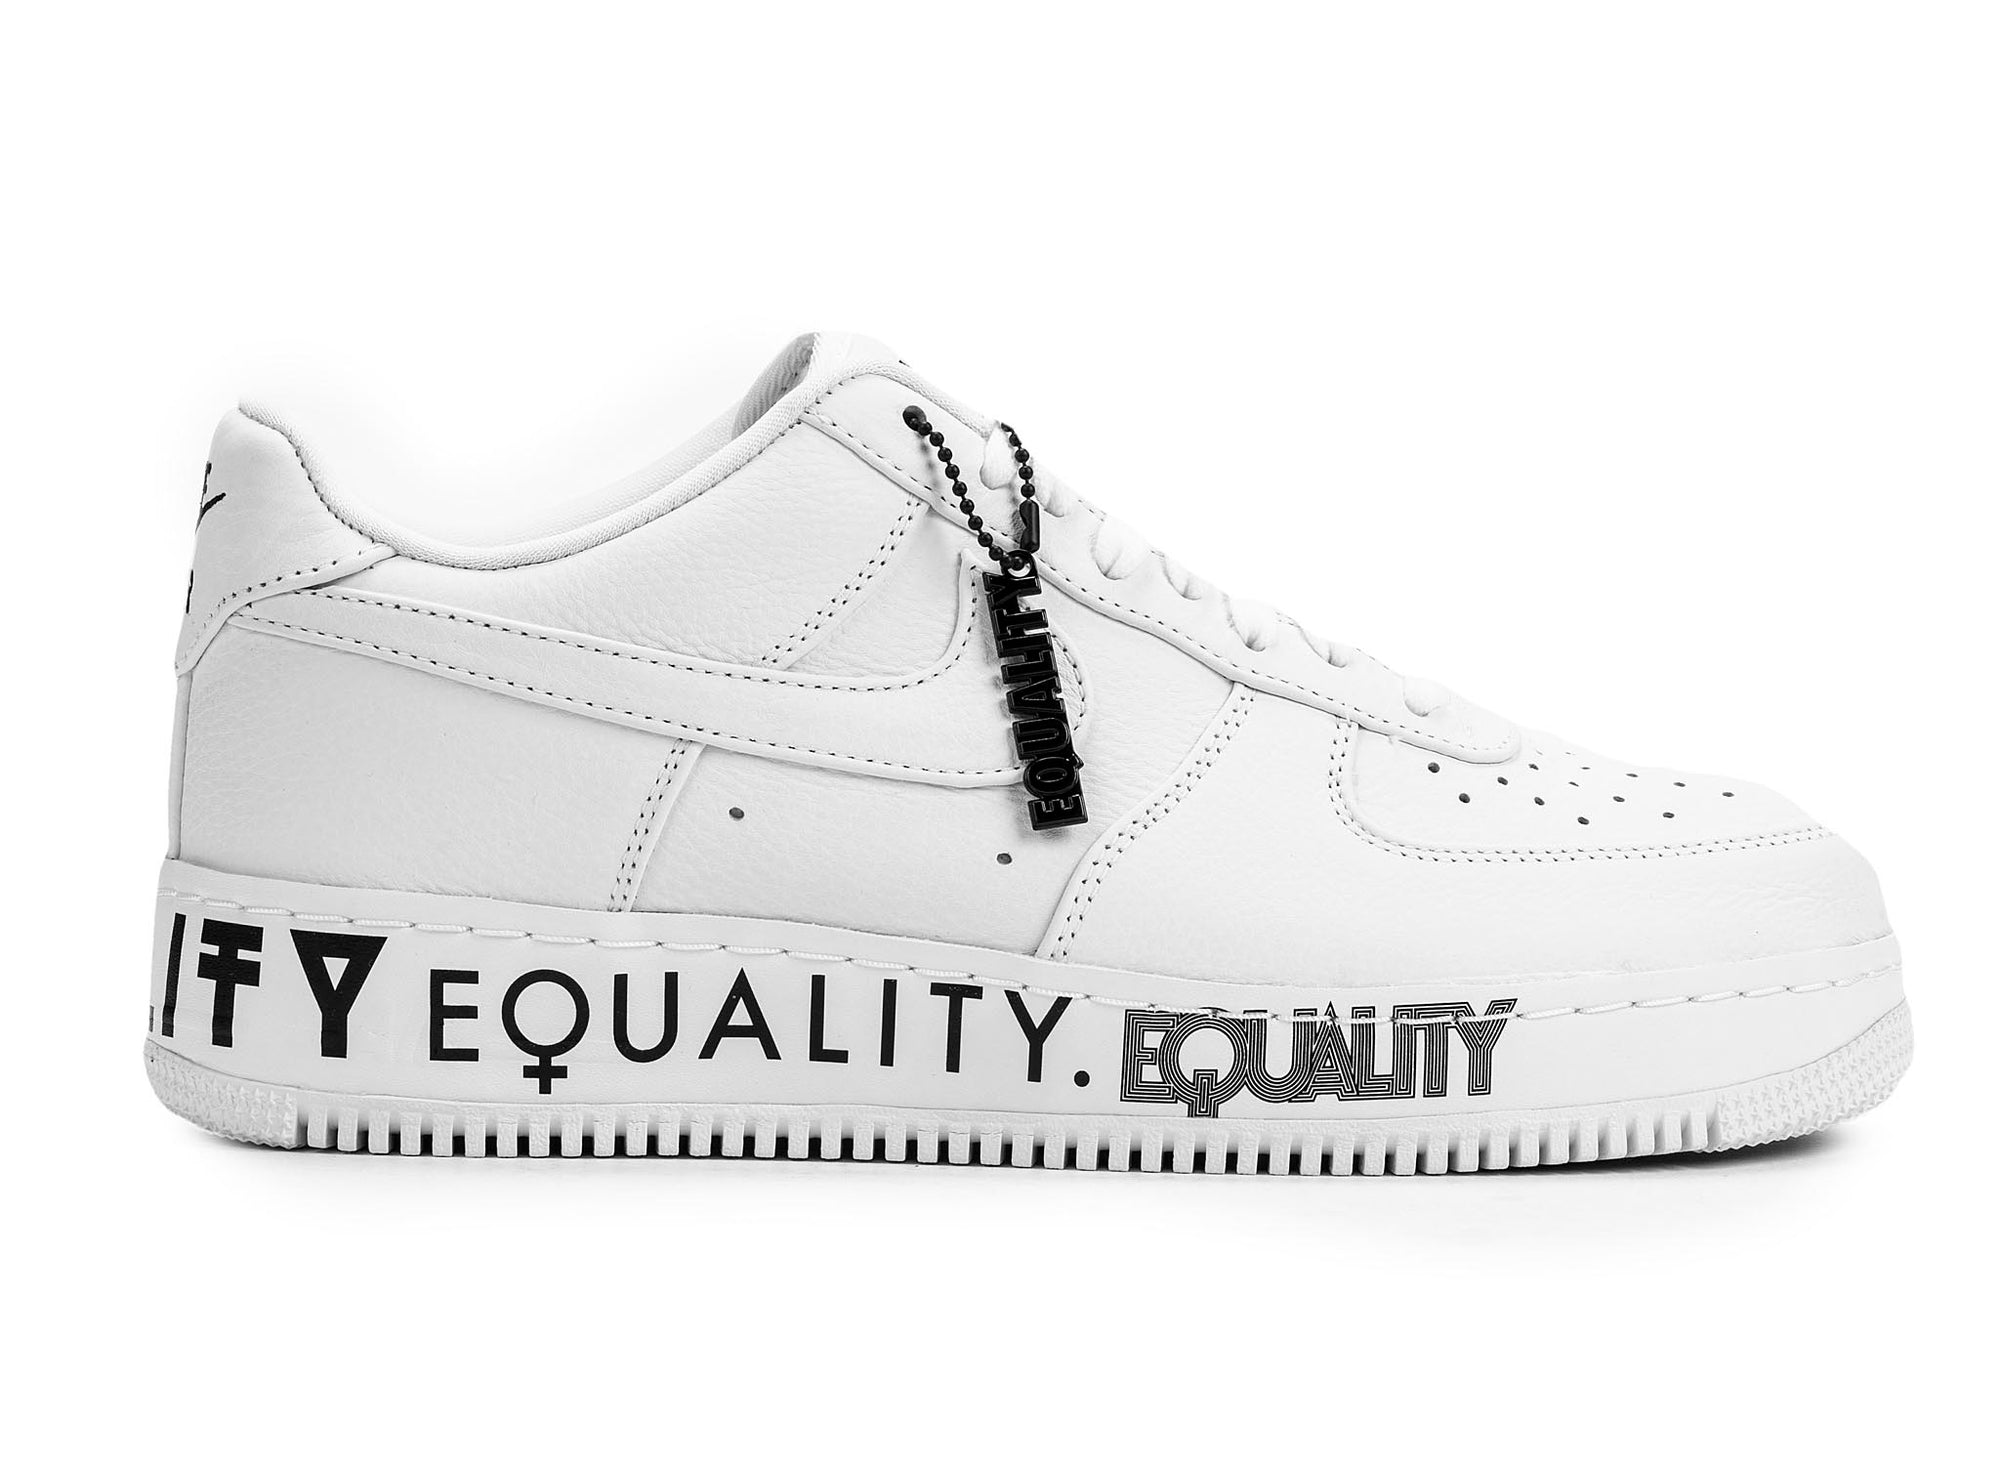 Nike Air Force 1 Low CMFT 'Equality'